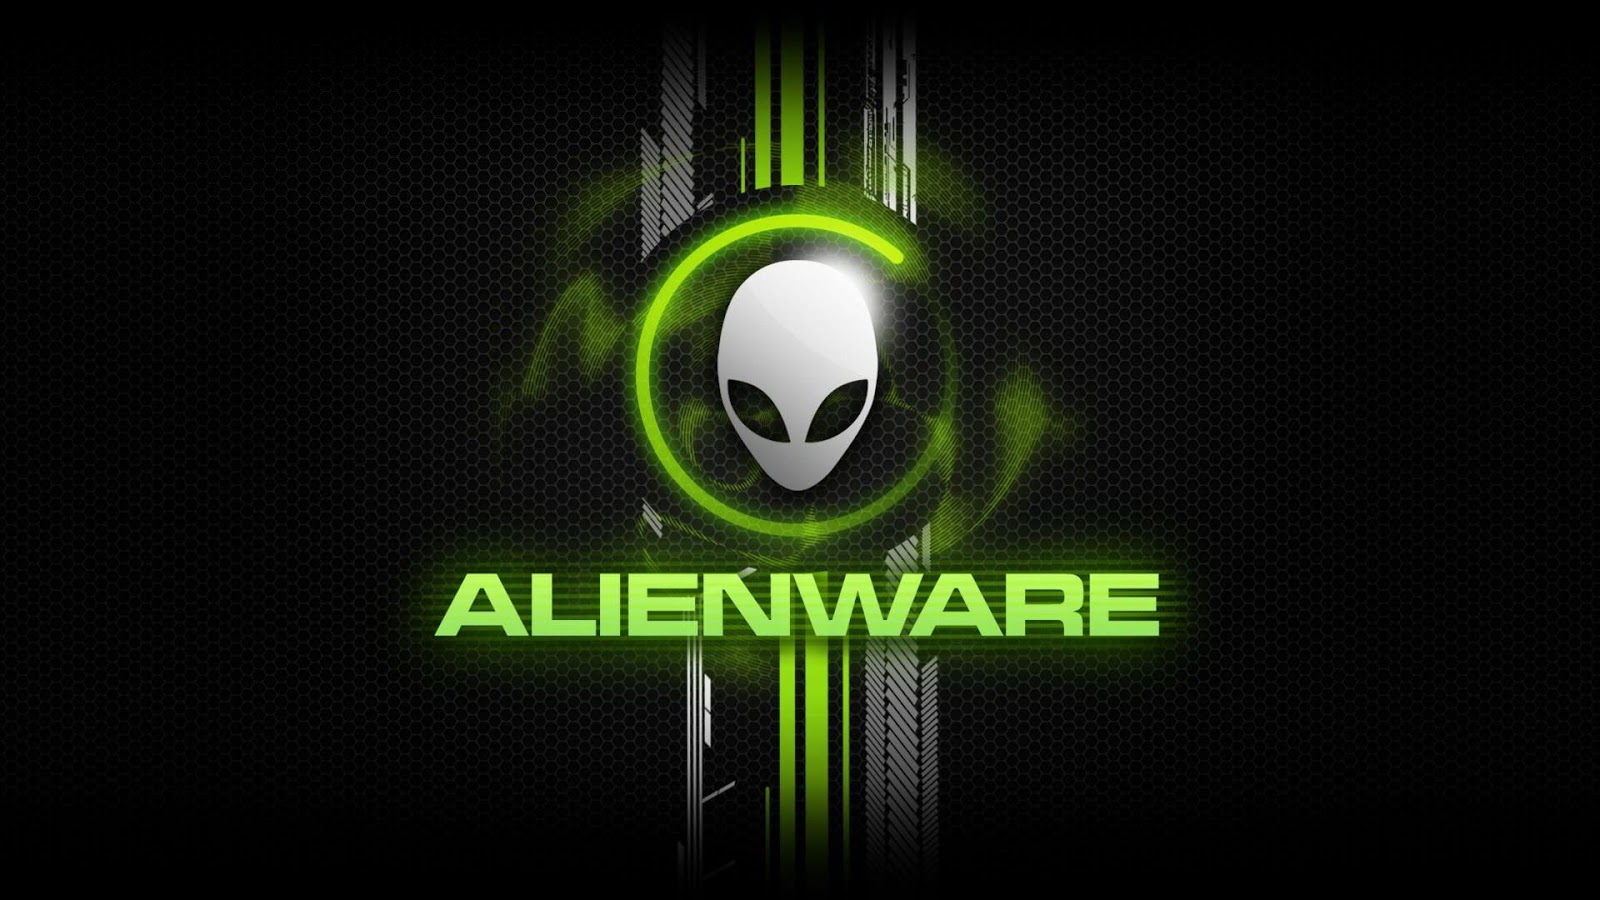 Gren Alienware Logo and Text